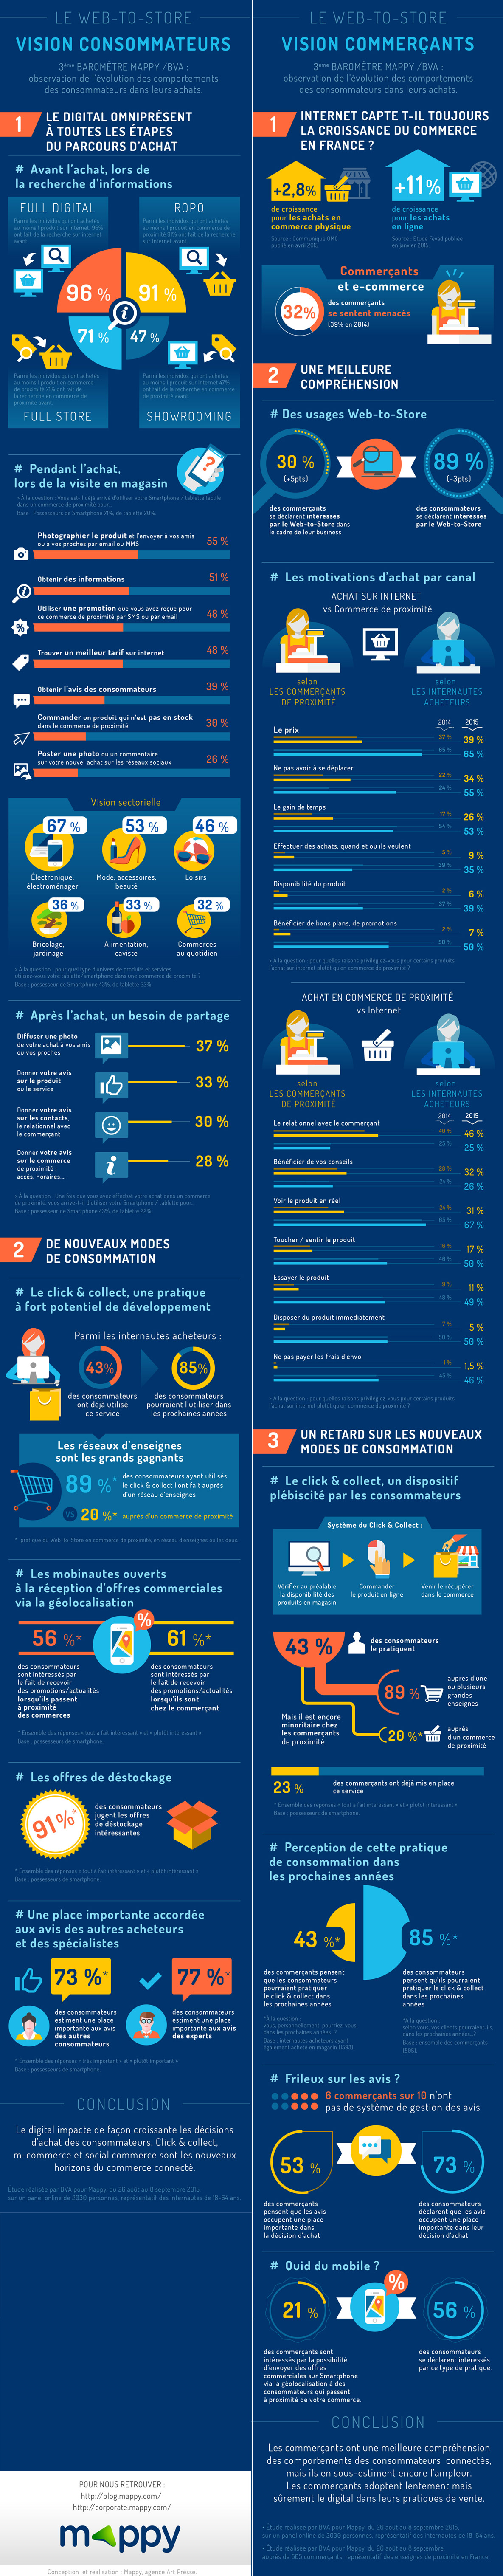 Mappy-BVA_Infographie-commerçants-2015